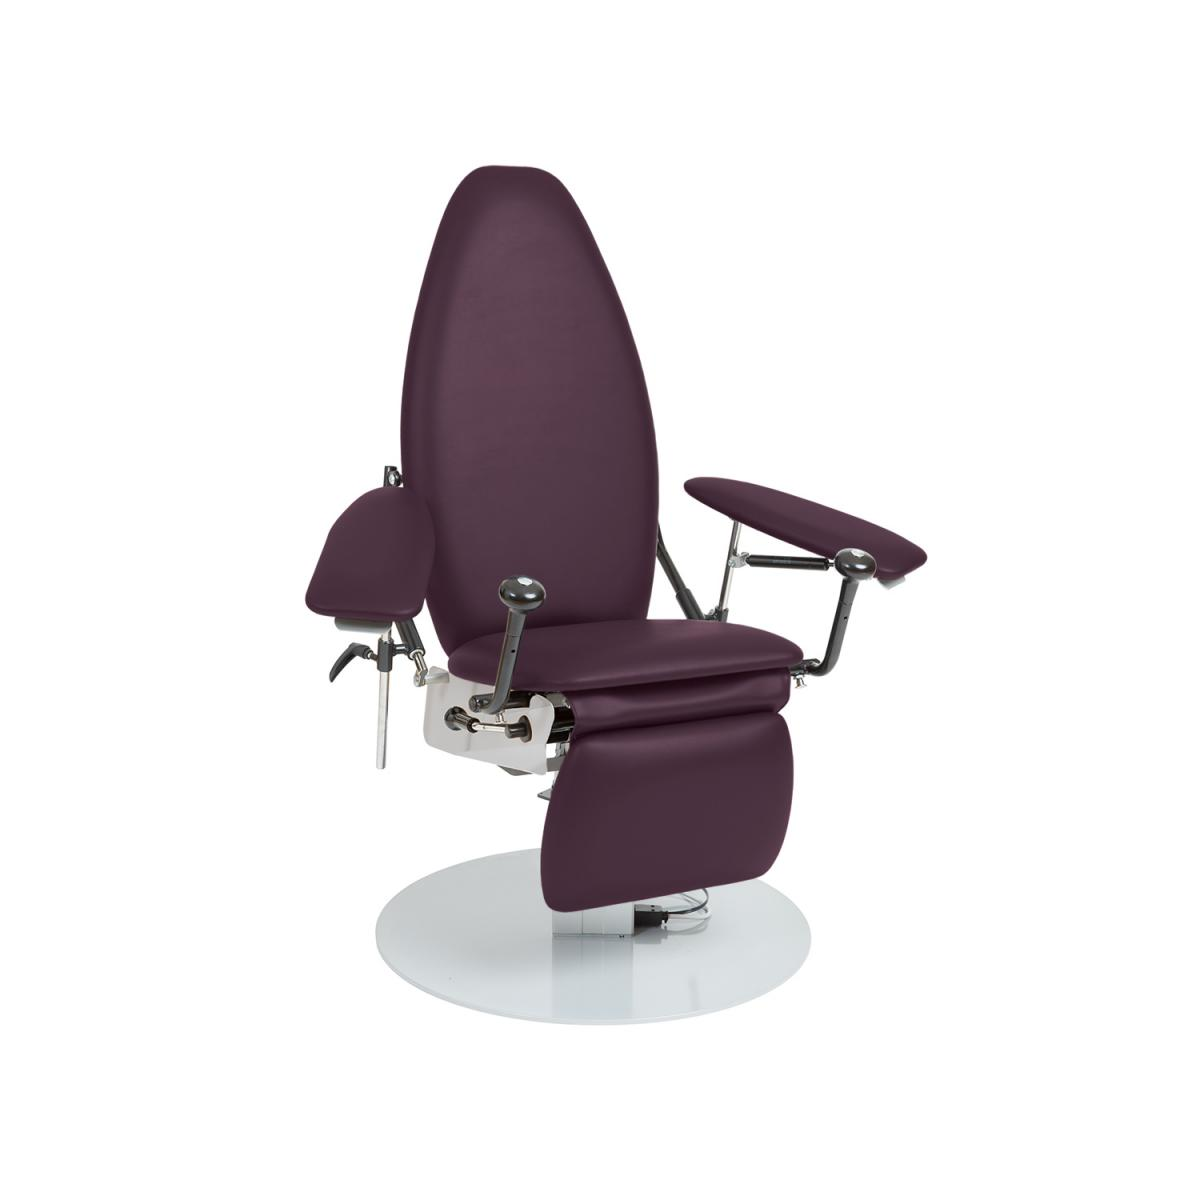 Sampling chair 510